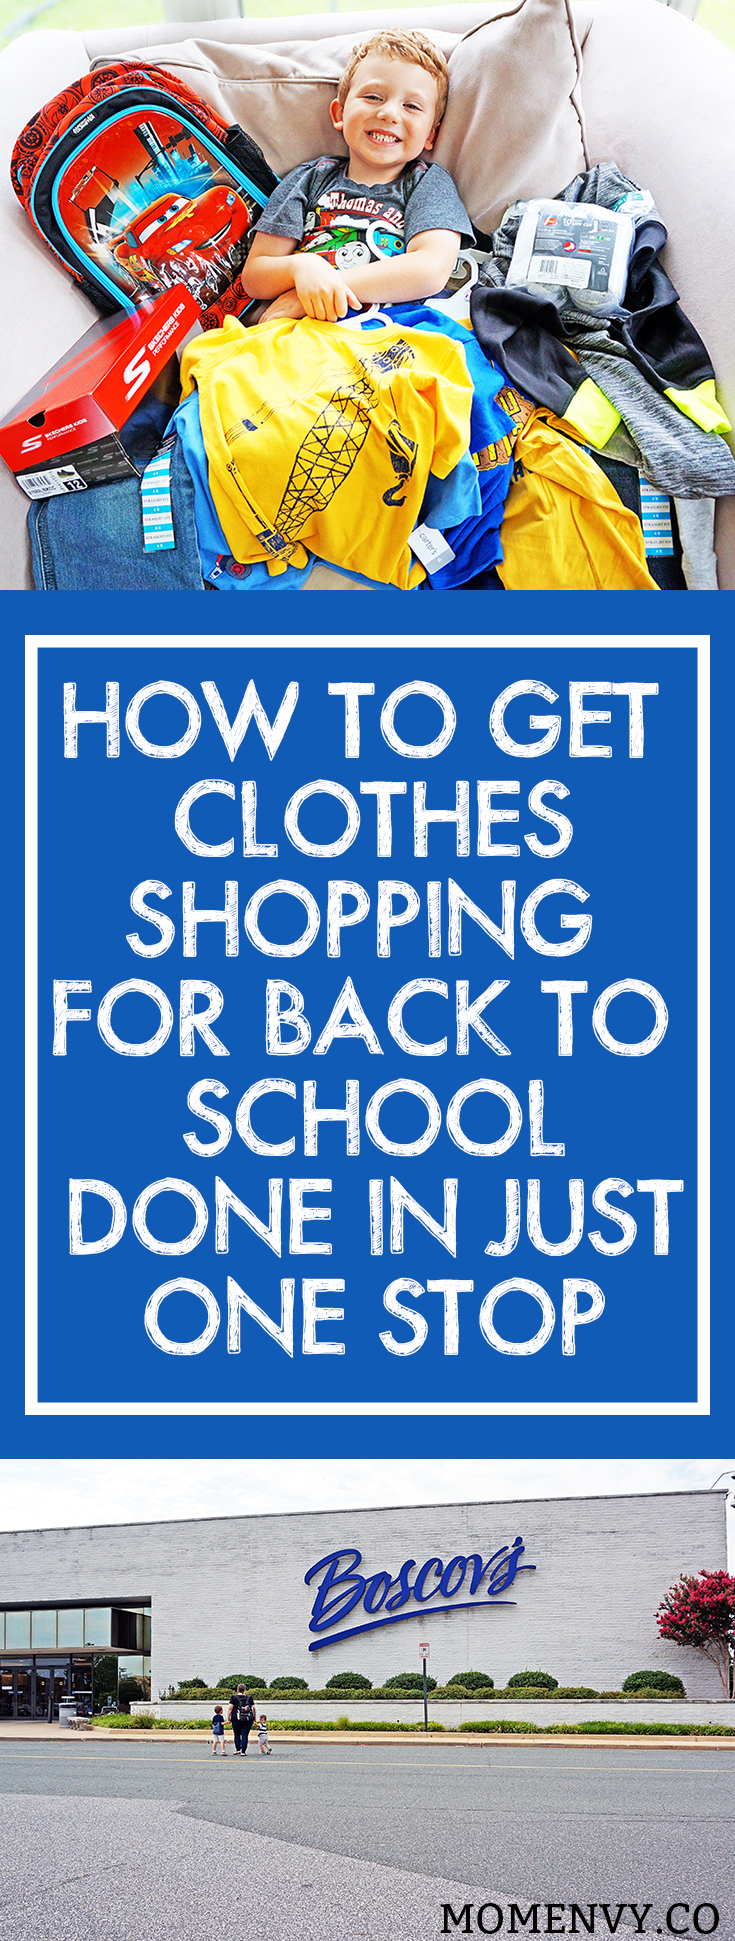 Boscov's Back to School Shopping. Get all of your back to school clothing and accessory needs in one store. Find quality yet inexpensive clothing that fits your family's busy lifestyle. Preschool Back to School.